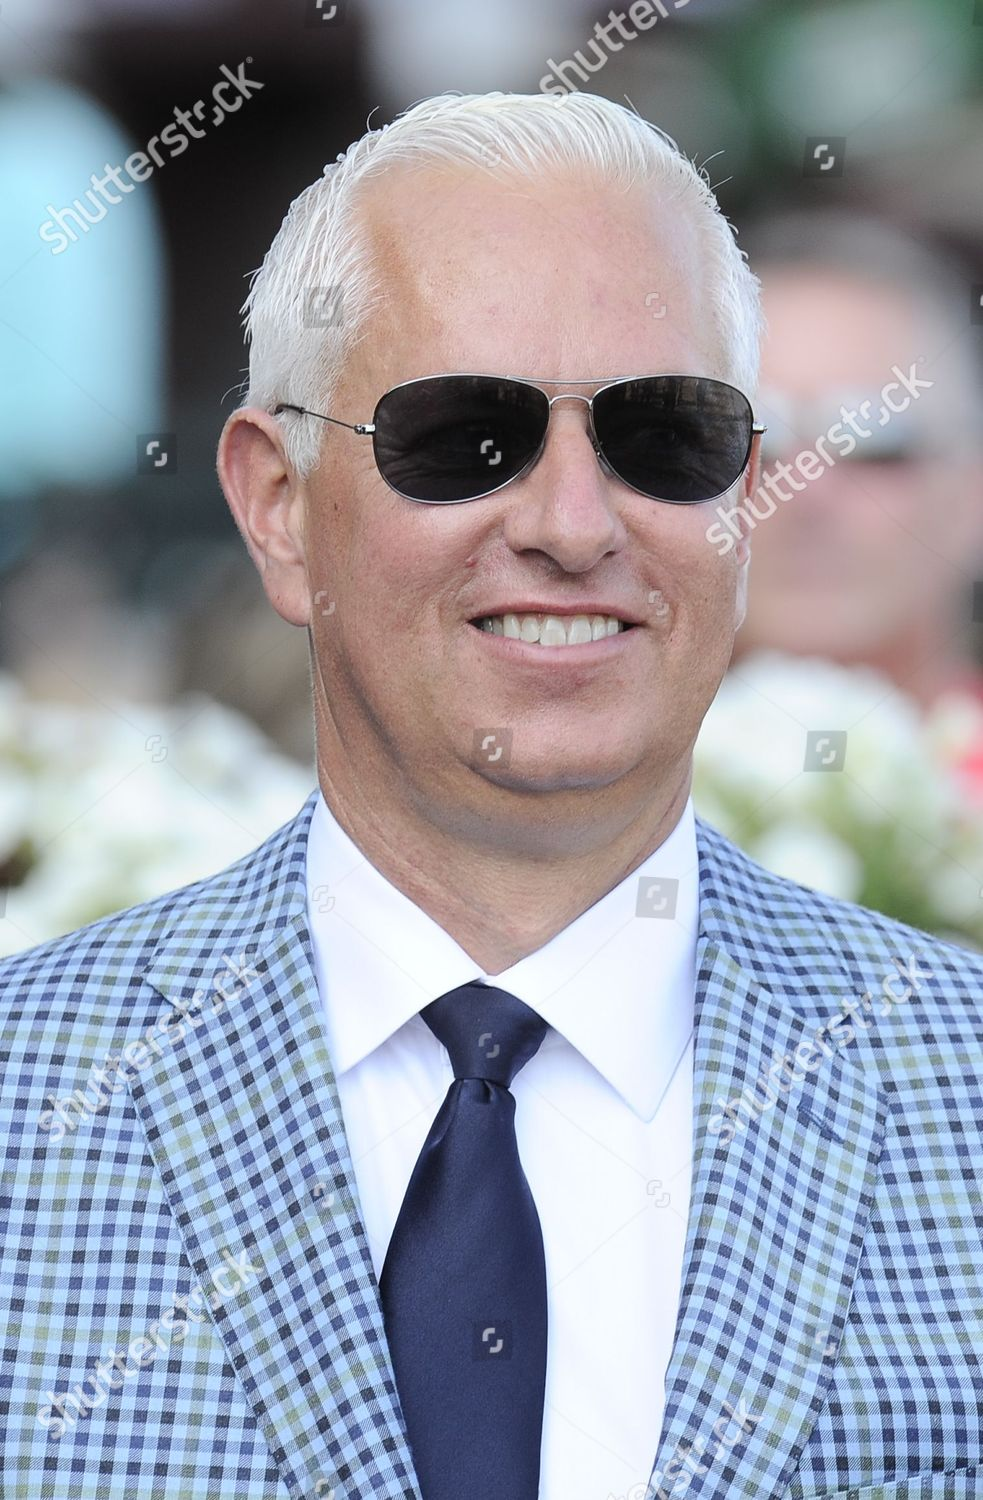 Horse Racing Saratoga Springs USA Stock Image By Hans Pennink For Editorial Use Jul 22 2016